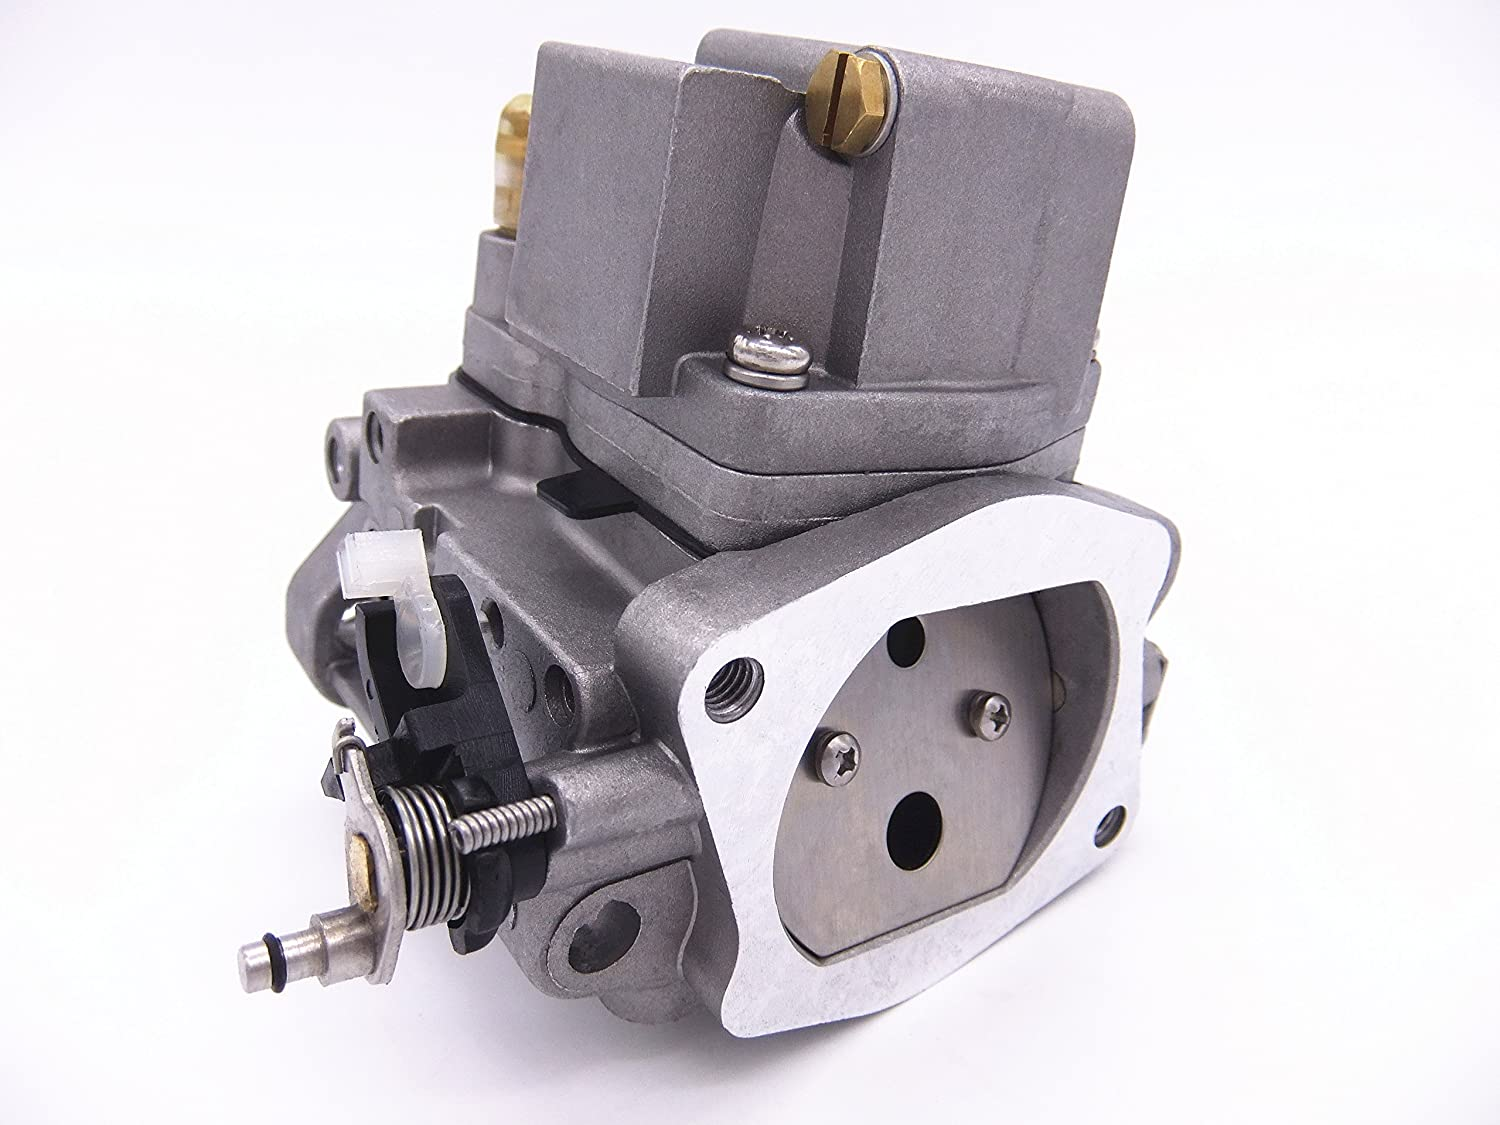 Amazon.com : Boat Motor Carbs Carburetor Assy 66T-14301-02 00 03 for Yamaha Enduro E40X 40HP 2-stroke Outboard Motors Engine : Sports & Outdoors